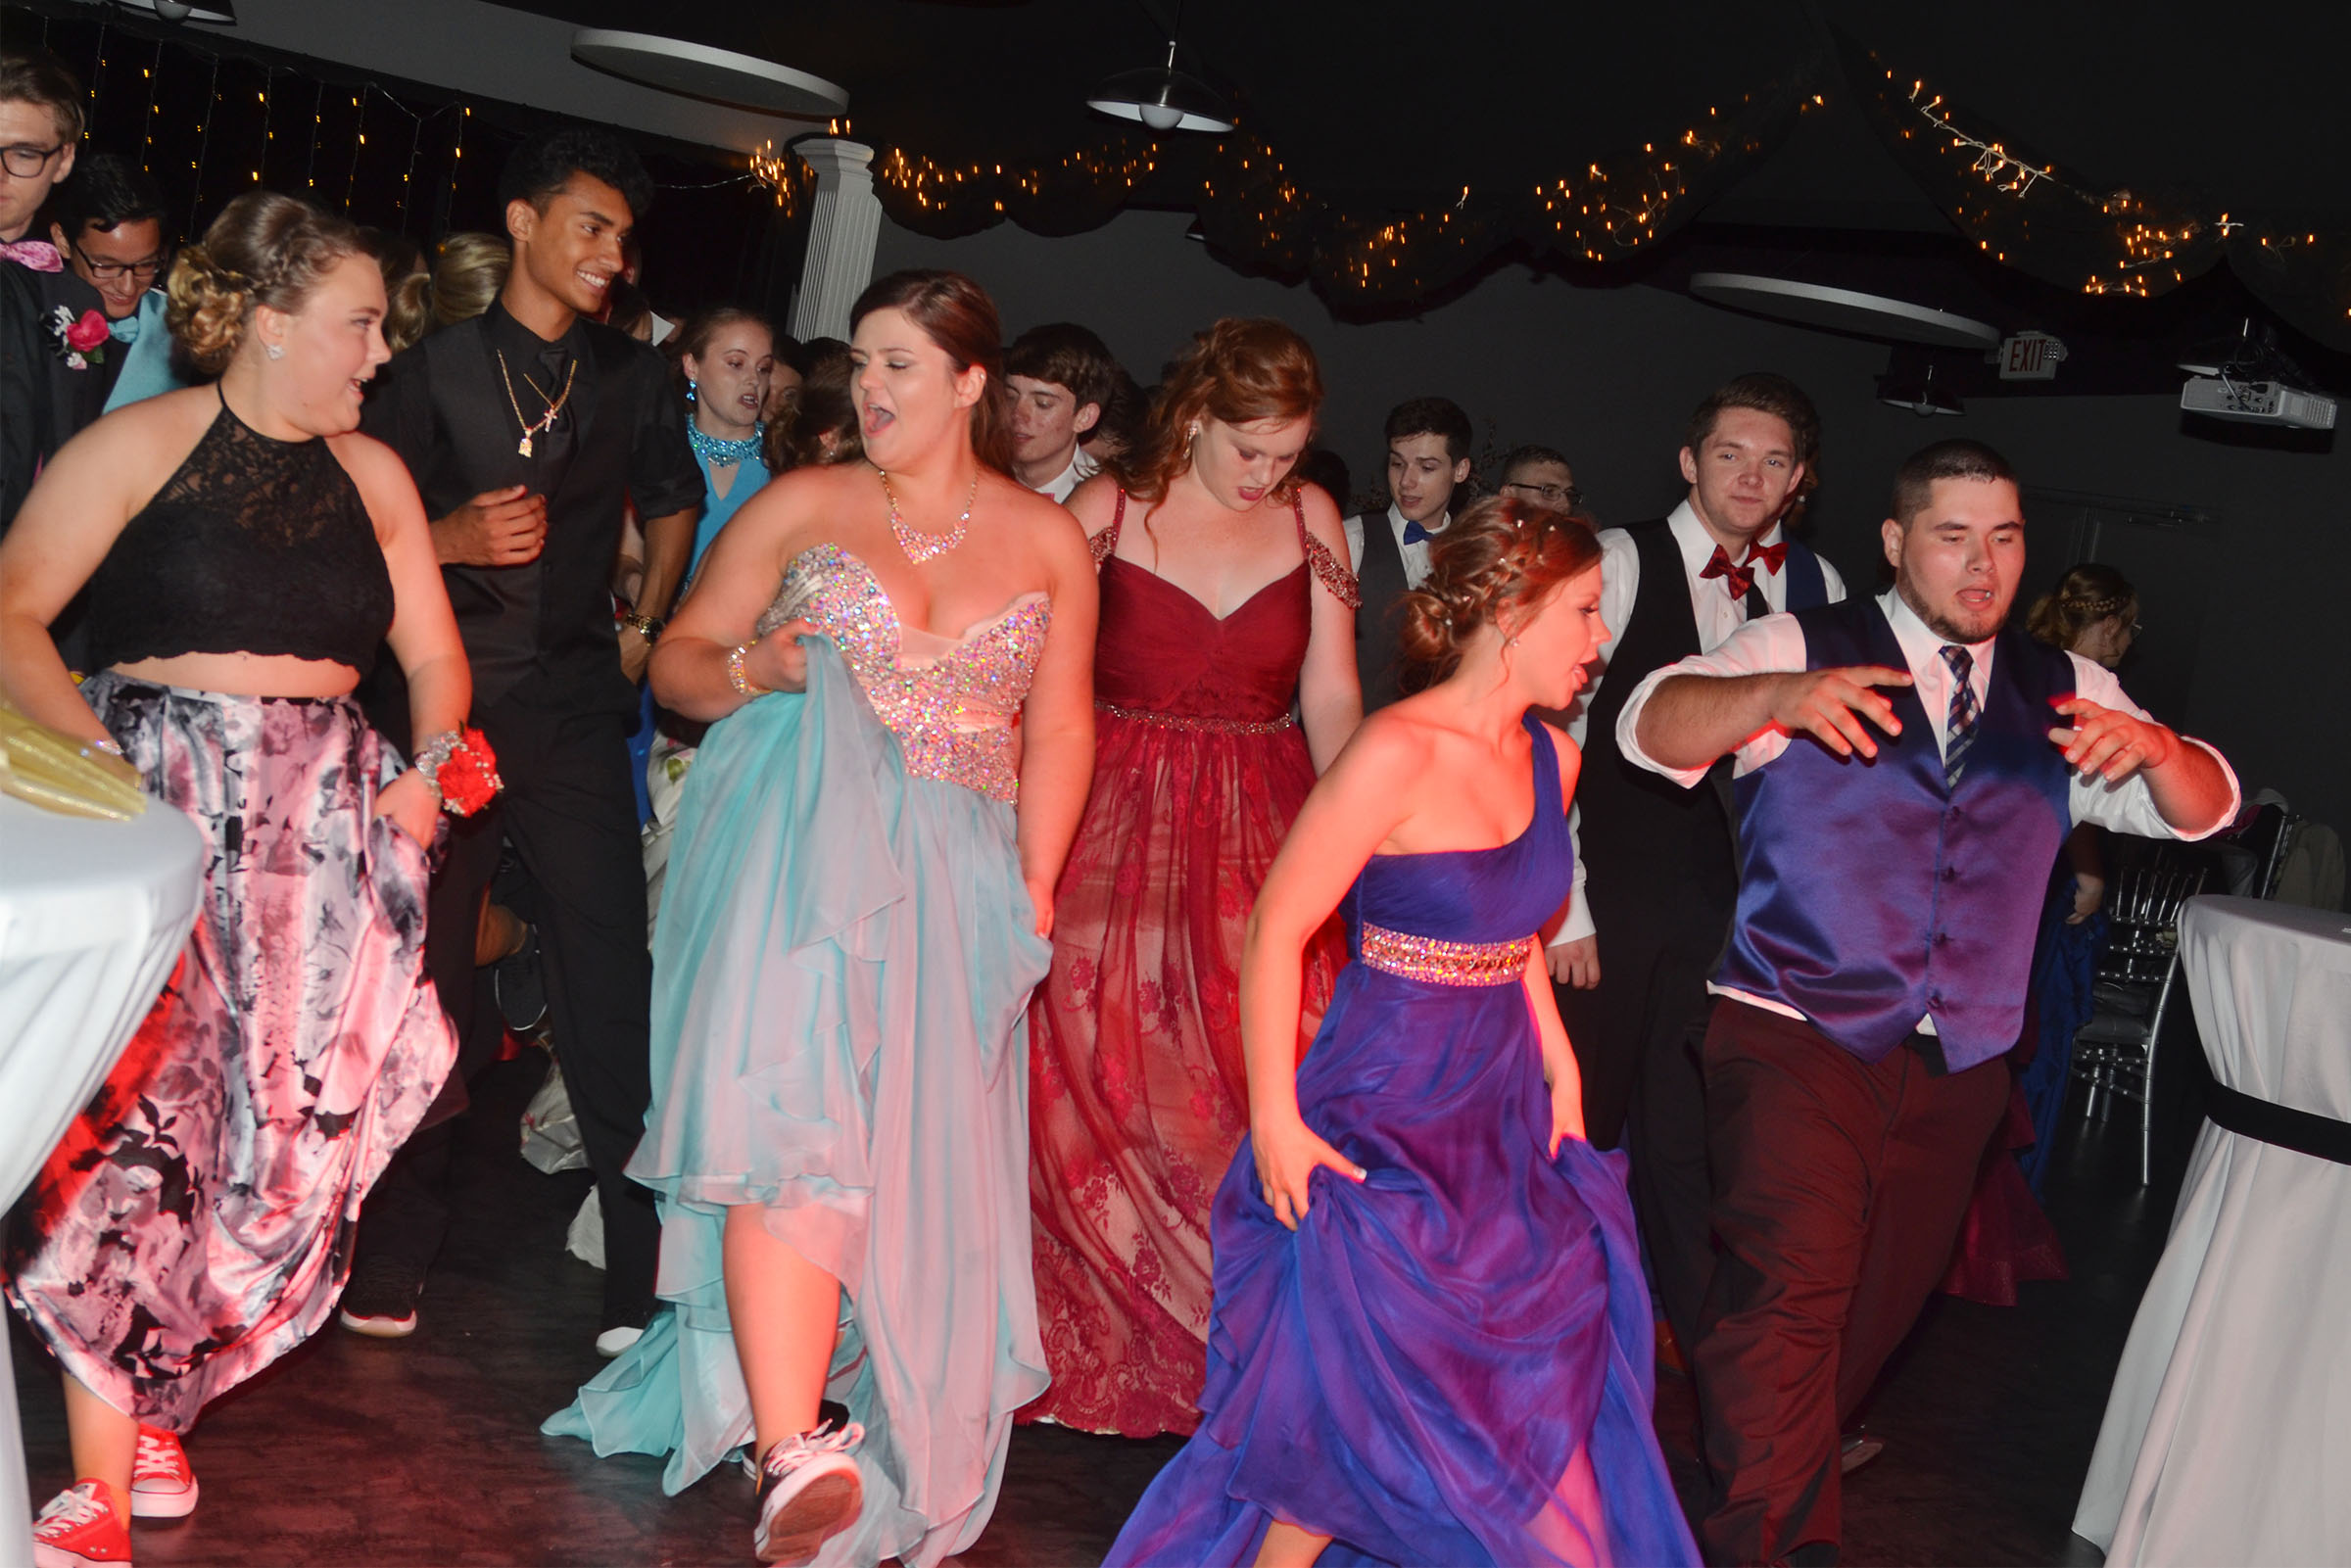 CHS students dance at prom.